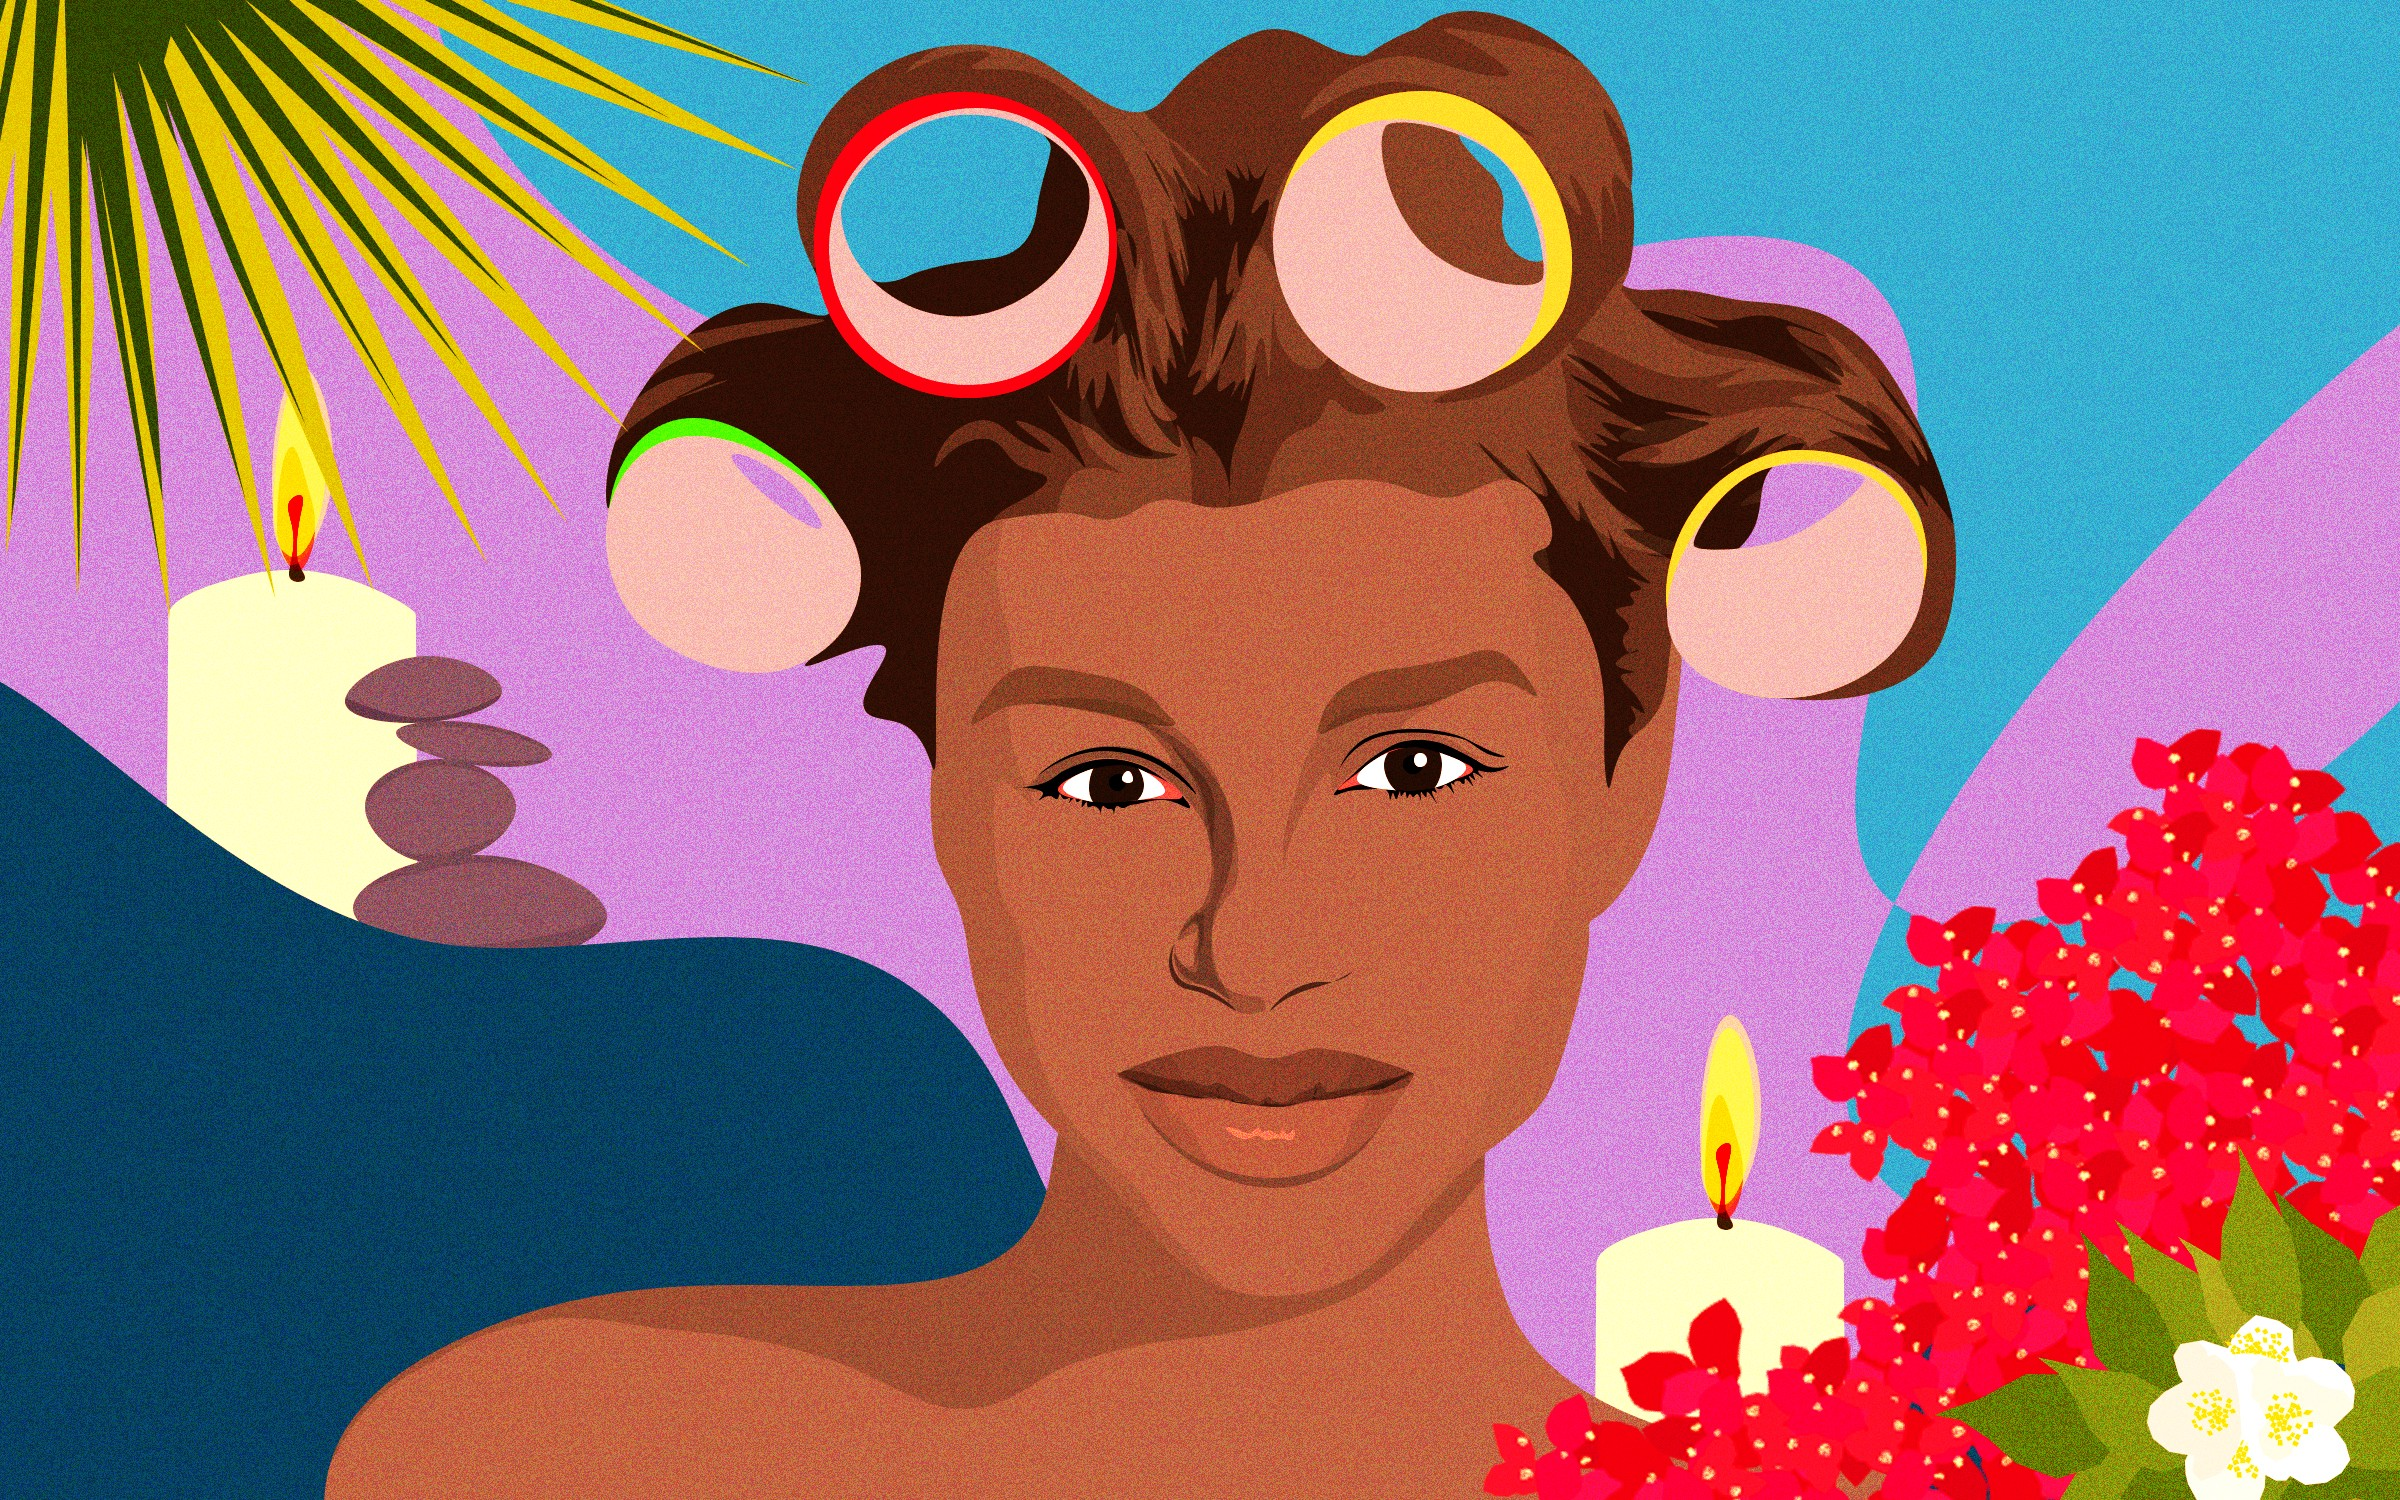 When Hair Care Is Self Care With Her Psychohairapy Practice Afiya By Driadonna Roland Zora